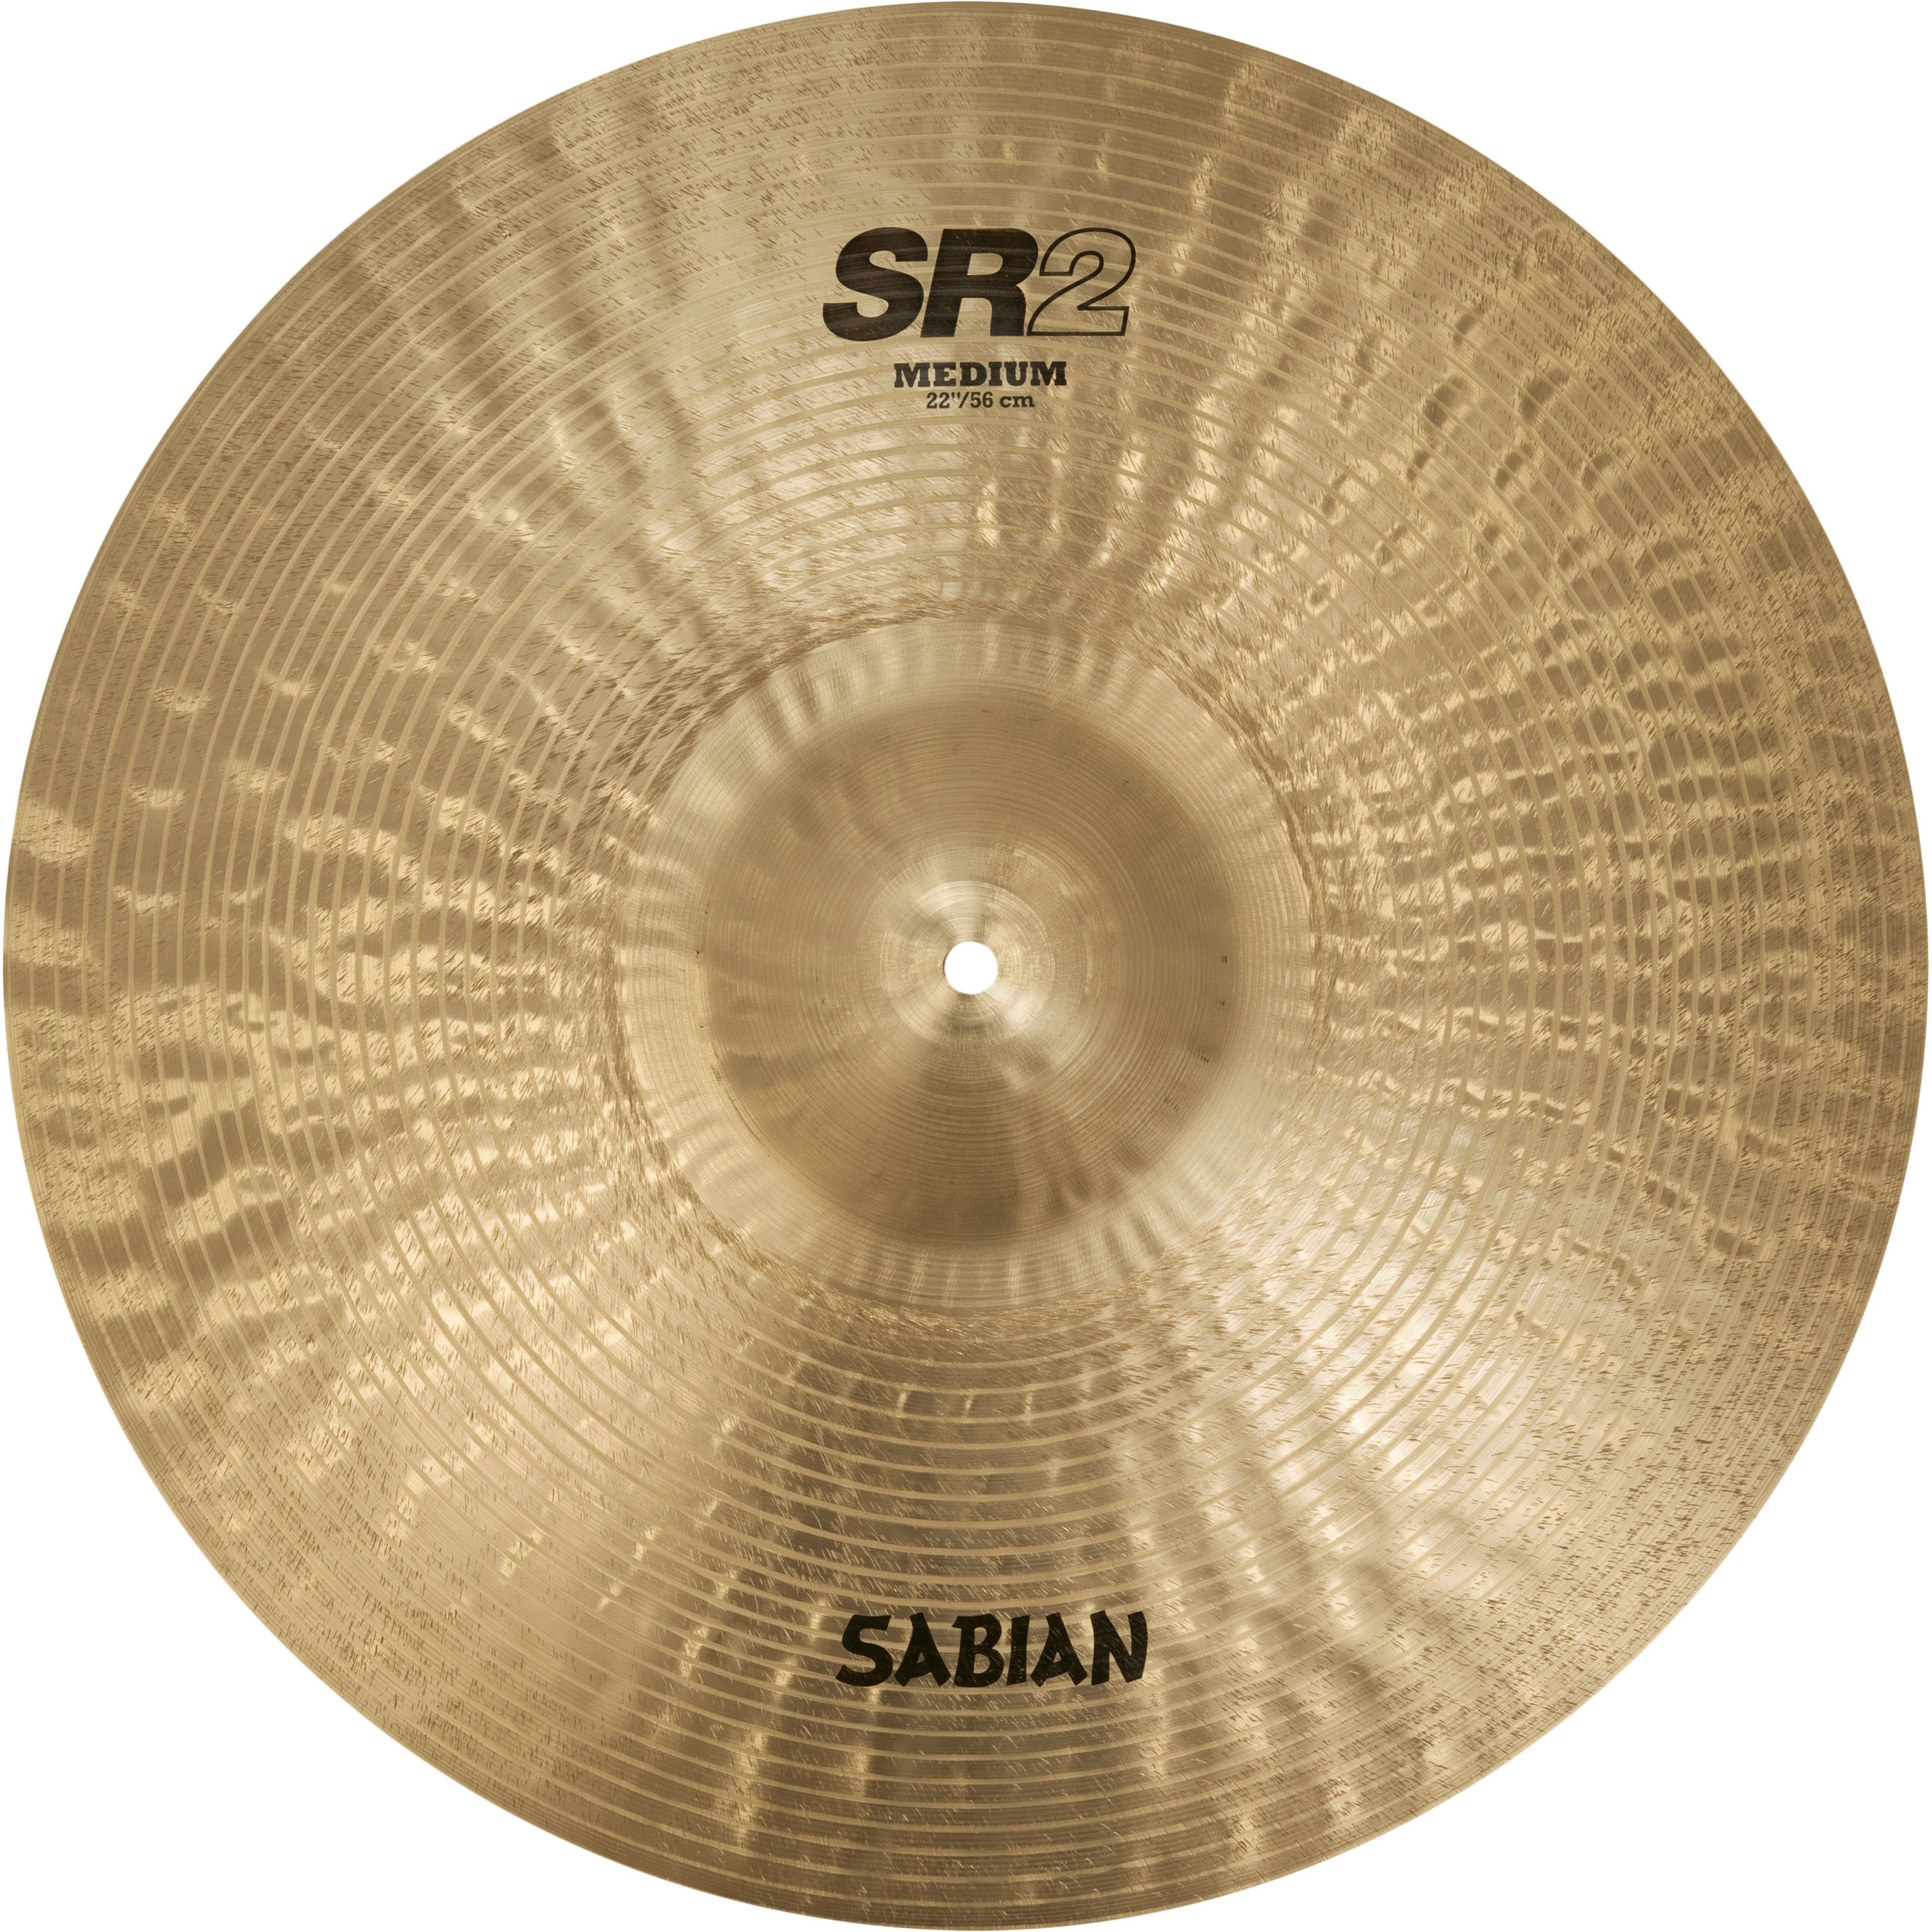 "Sabian 22"" SR2 Medium Cymbal"